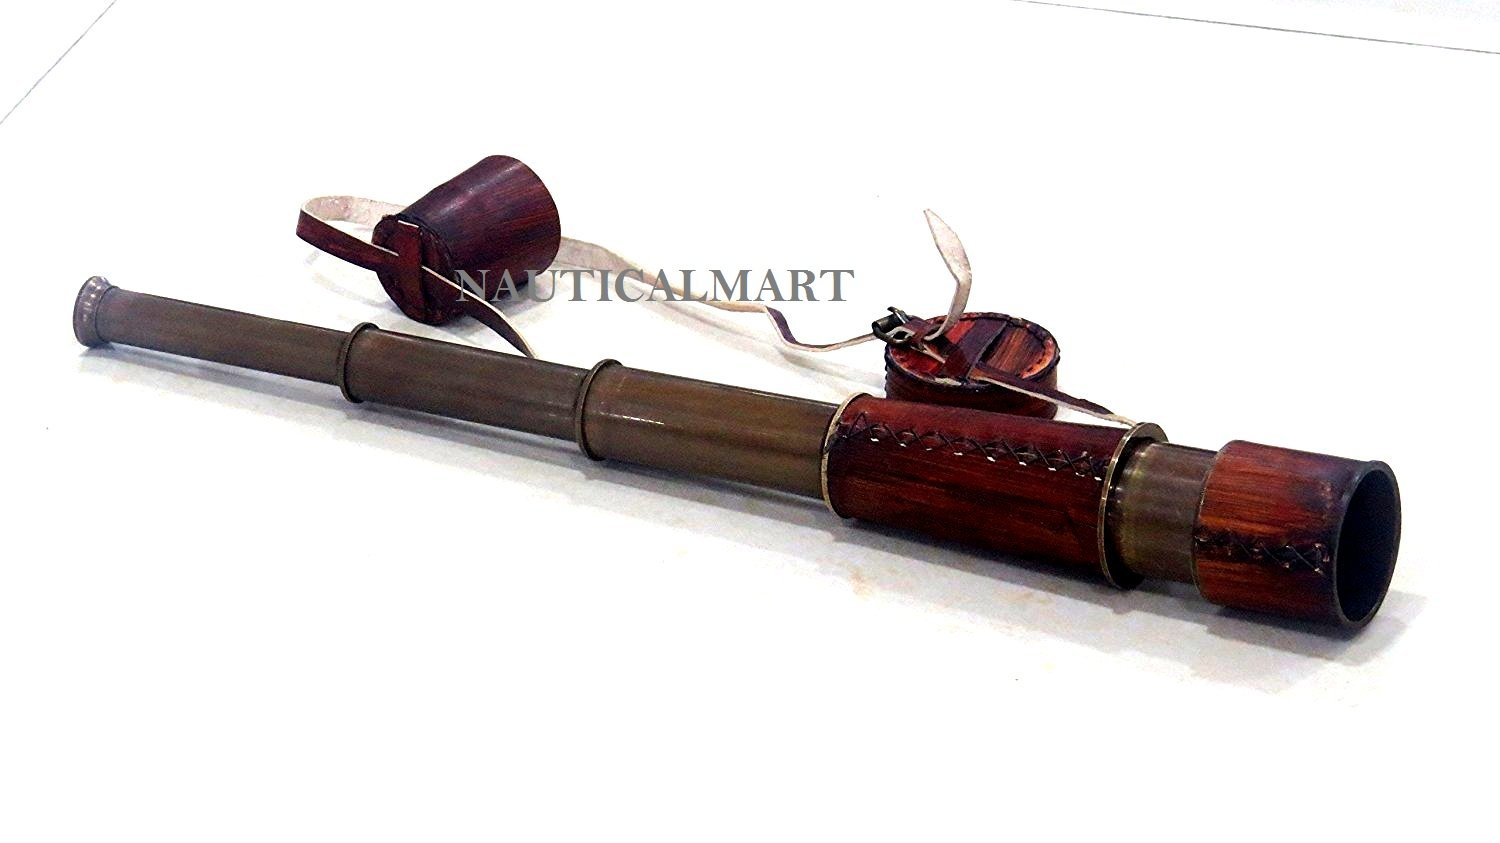 20 Inch Ship Captain Brass Telescope with Spy Glass & Leather Case By Nauticalmart